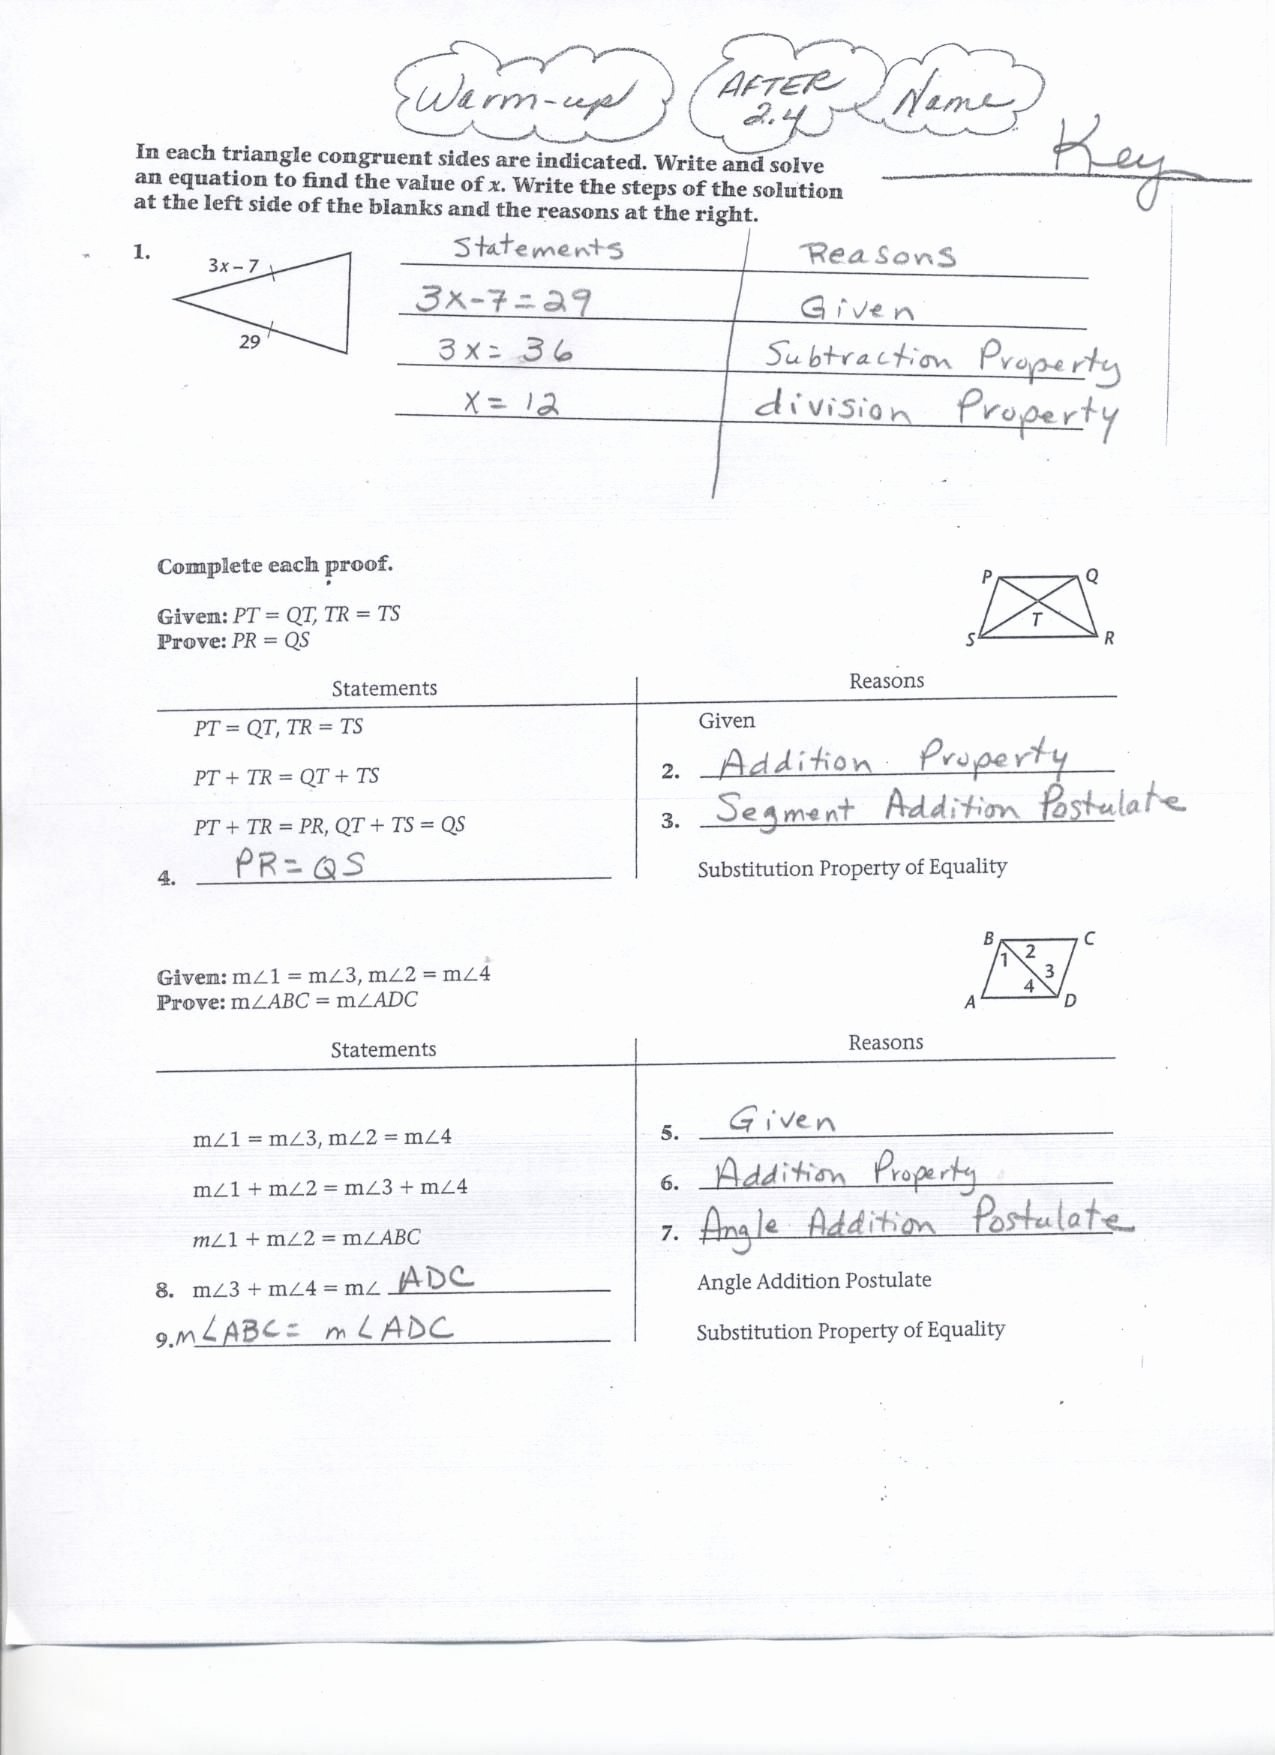 Angle Addition Postulate Worksheet Fresh Geometry Segment and Angle Addition Worksheet Answers